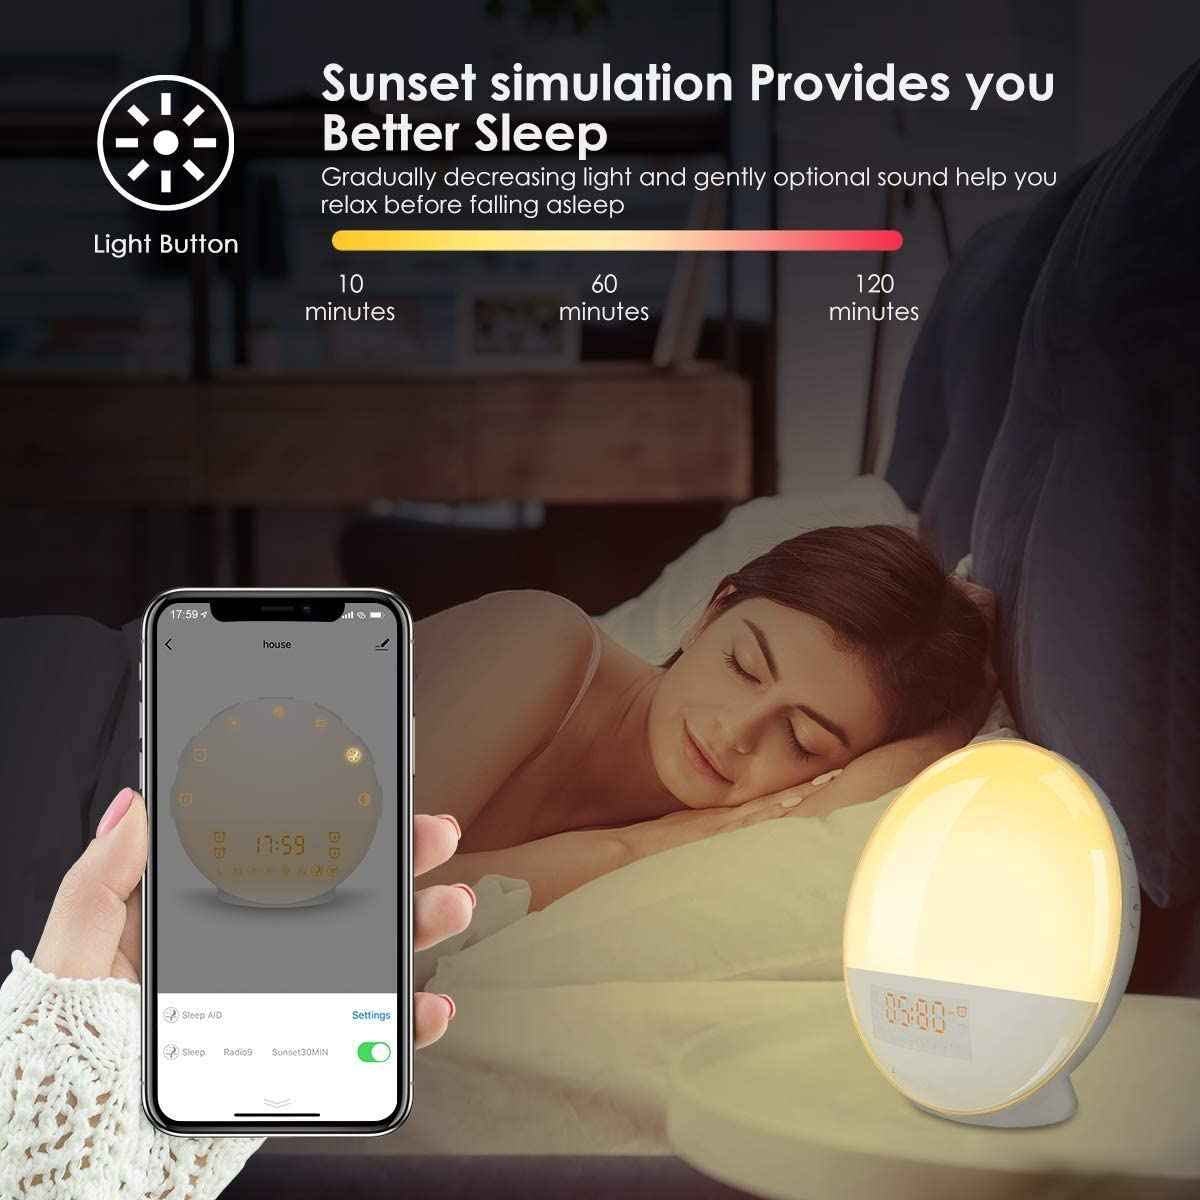 USB Charge Port 4 Alarms Snooze Dimmer FM Radio Sunrise Digital Alarm Clock Smart Wake-up Light 7 Colored Changed Sunrise Simulation Creative Gift for Kids Adults 7 Nature Sounds Sleep Aid